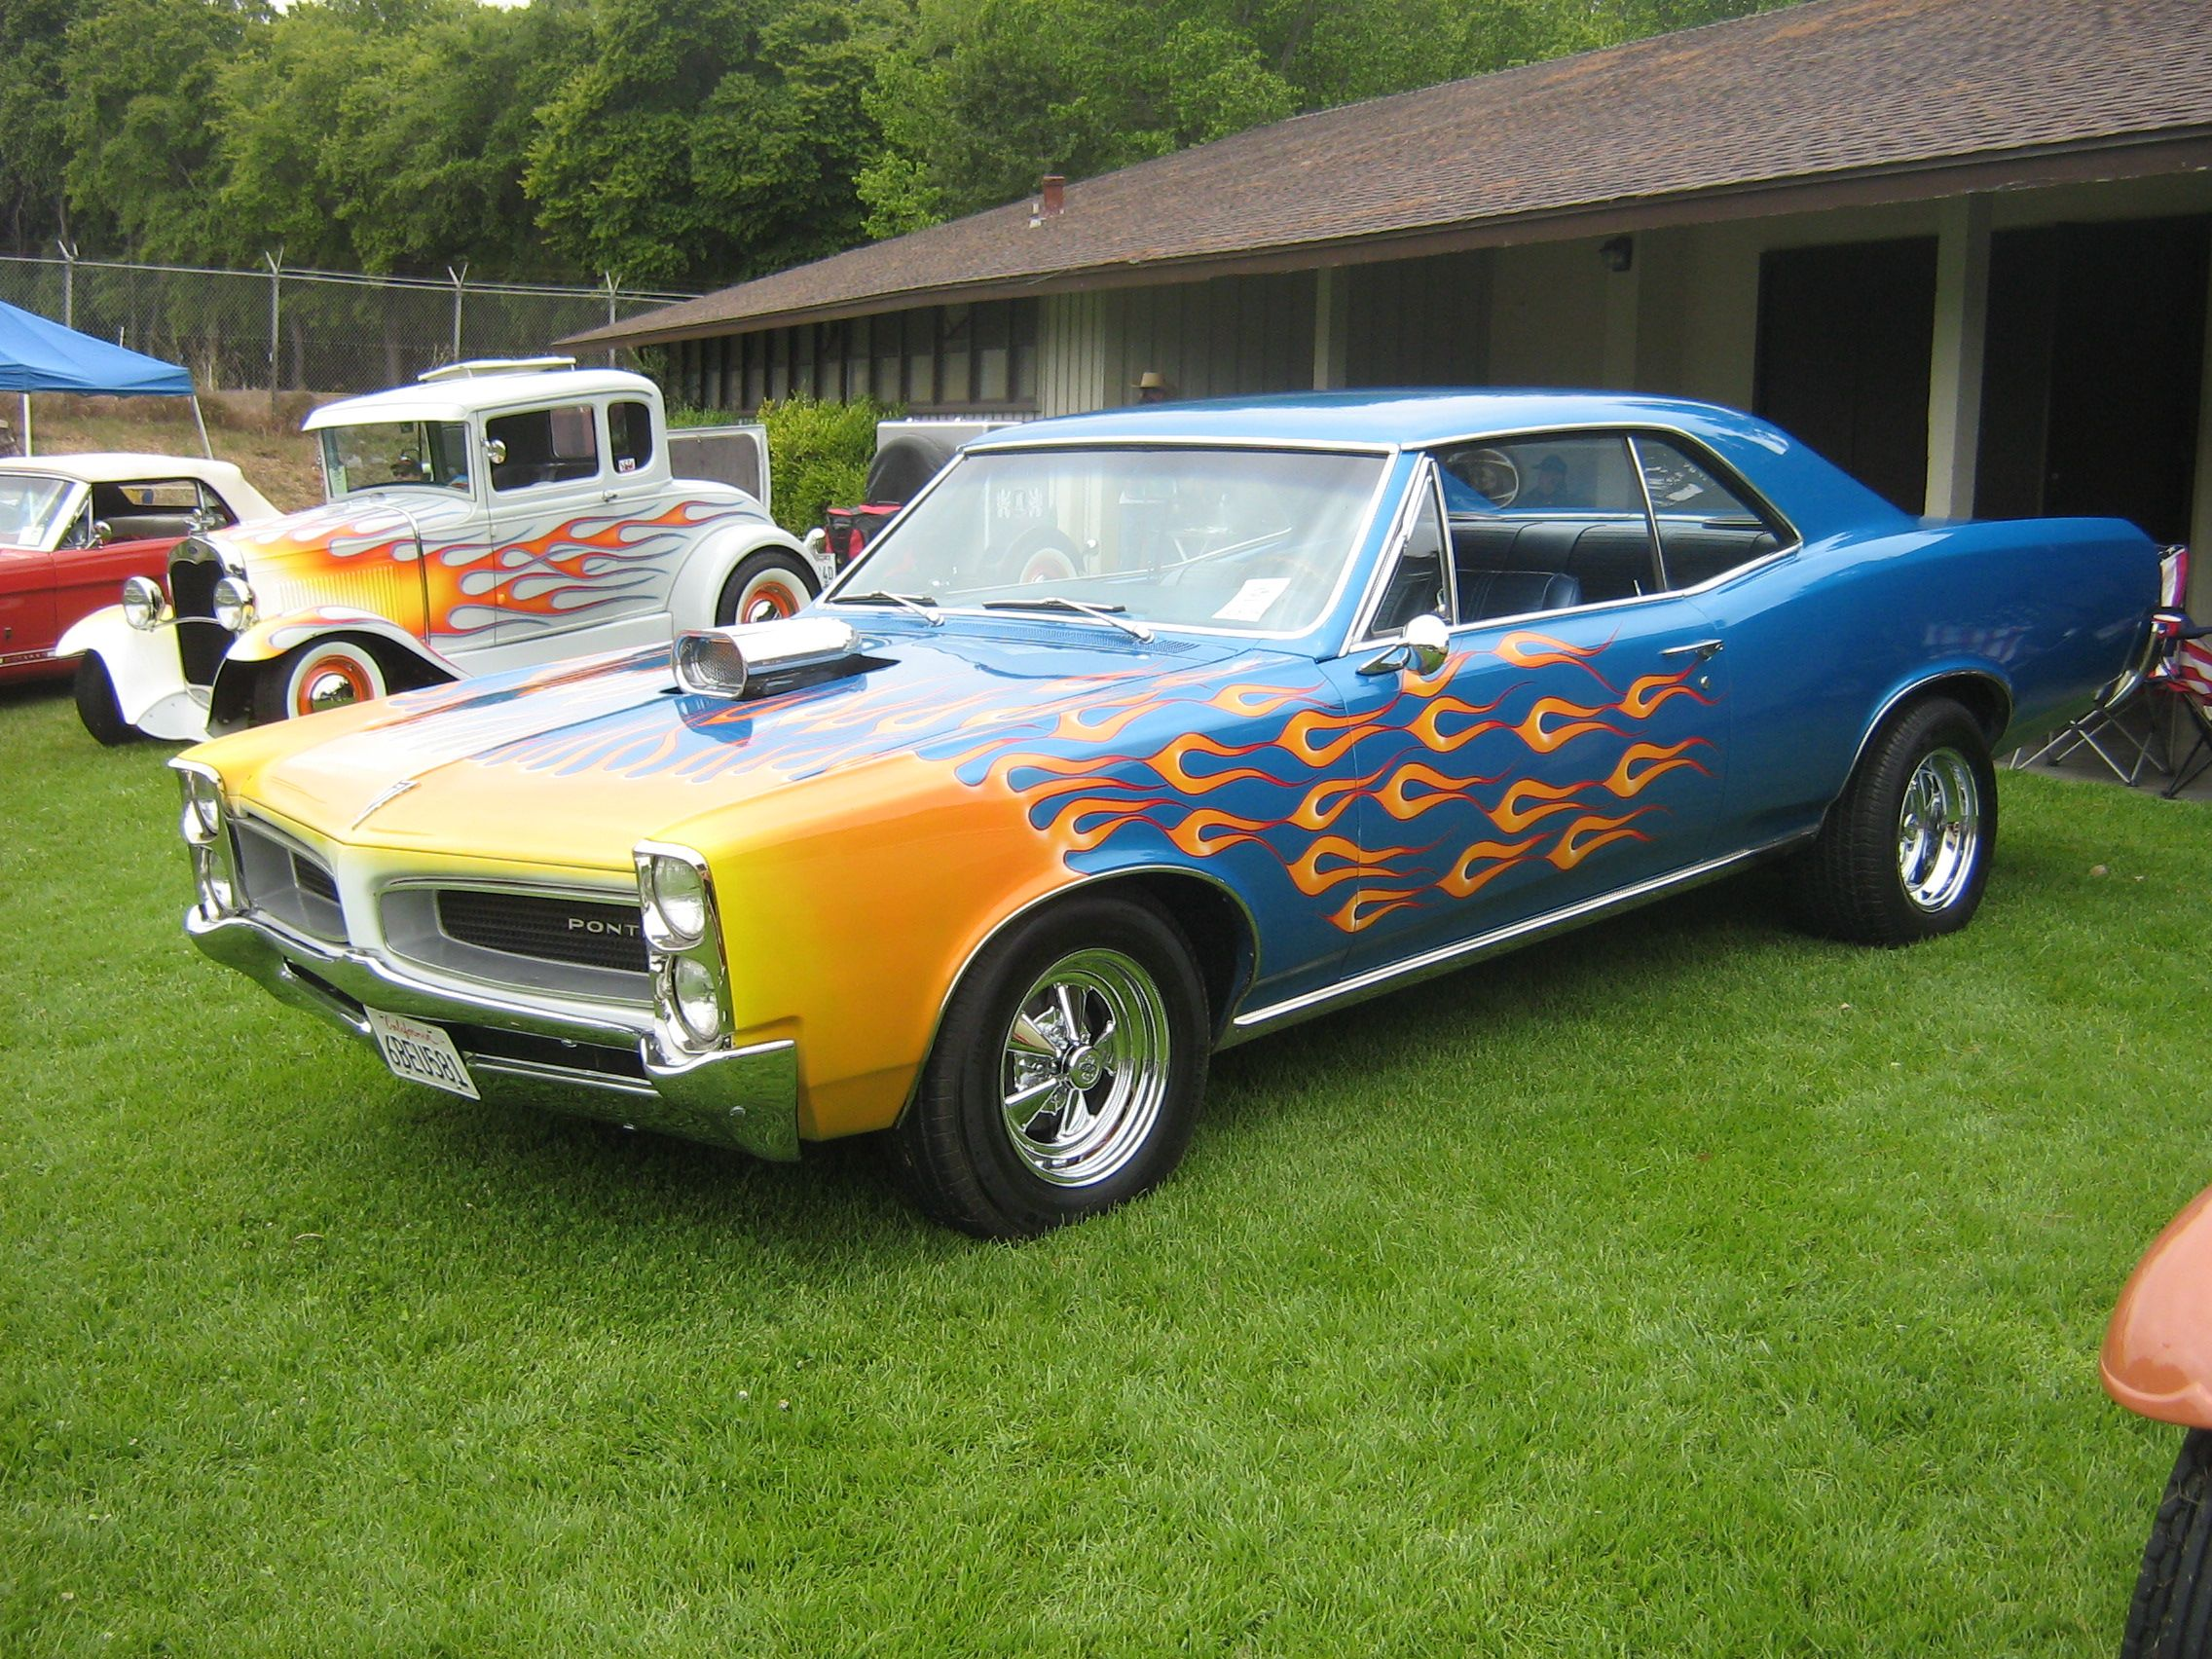 Hot Rod Muscle Car Pontiac Muscle Cars Hot Rod Tuning Wallpaper